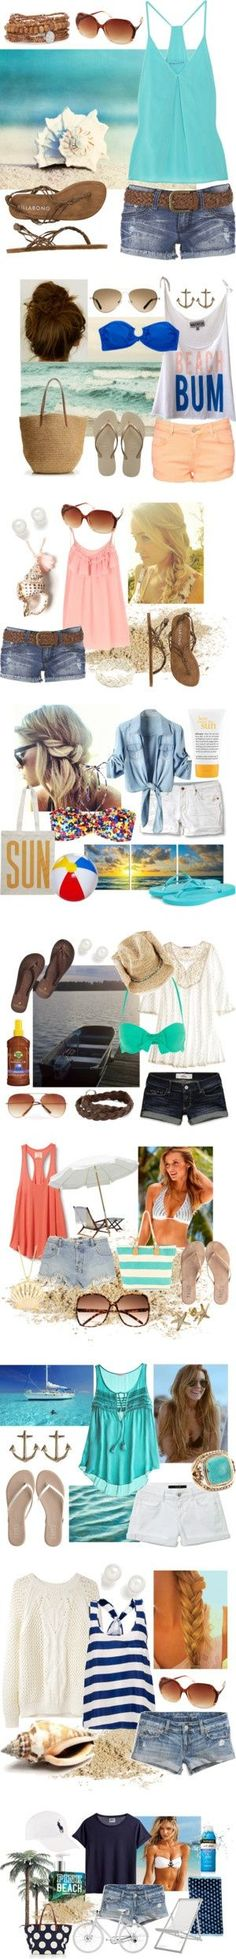 Beach Style: Dreaming of Summer.all the shorts are rather short, but cute outfit ideas! Summer Wear, Spring Summer Fashion, Summer Outfits, Summer Clothes, Spring Break, Beach Clothes, Summer Time, Summer Days, Casual Summer